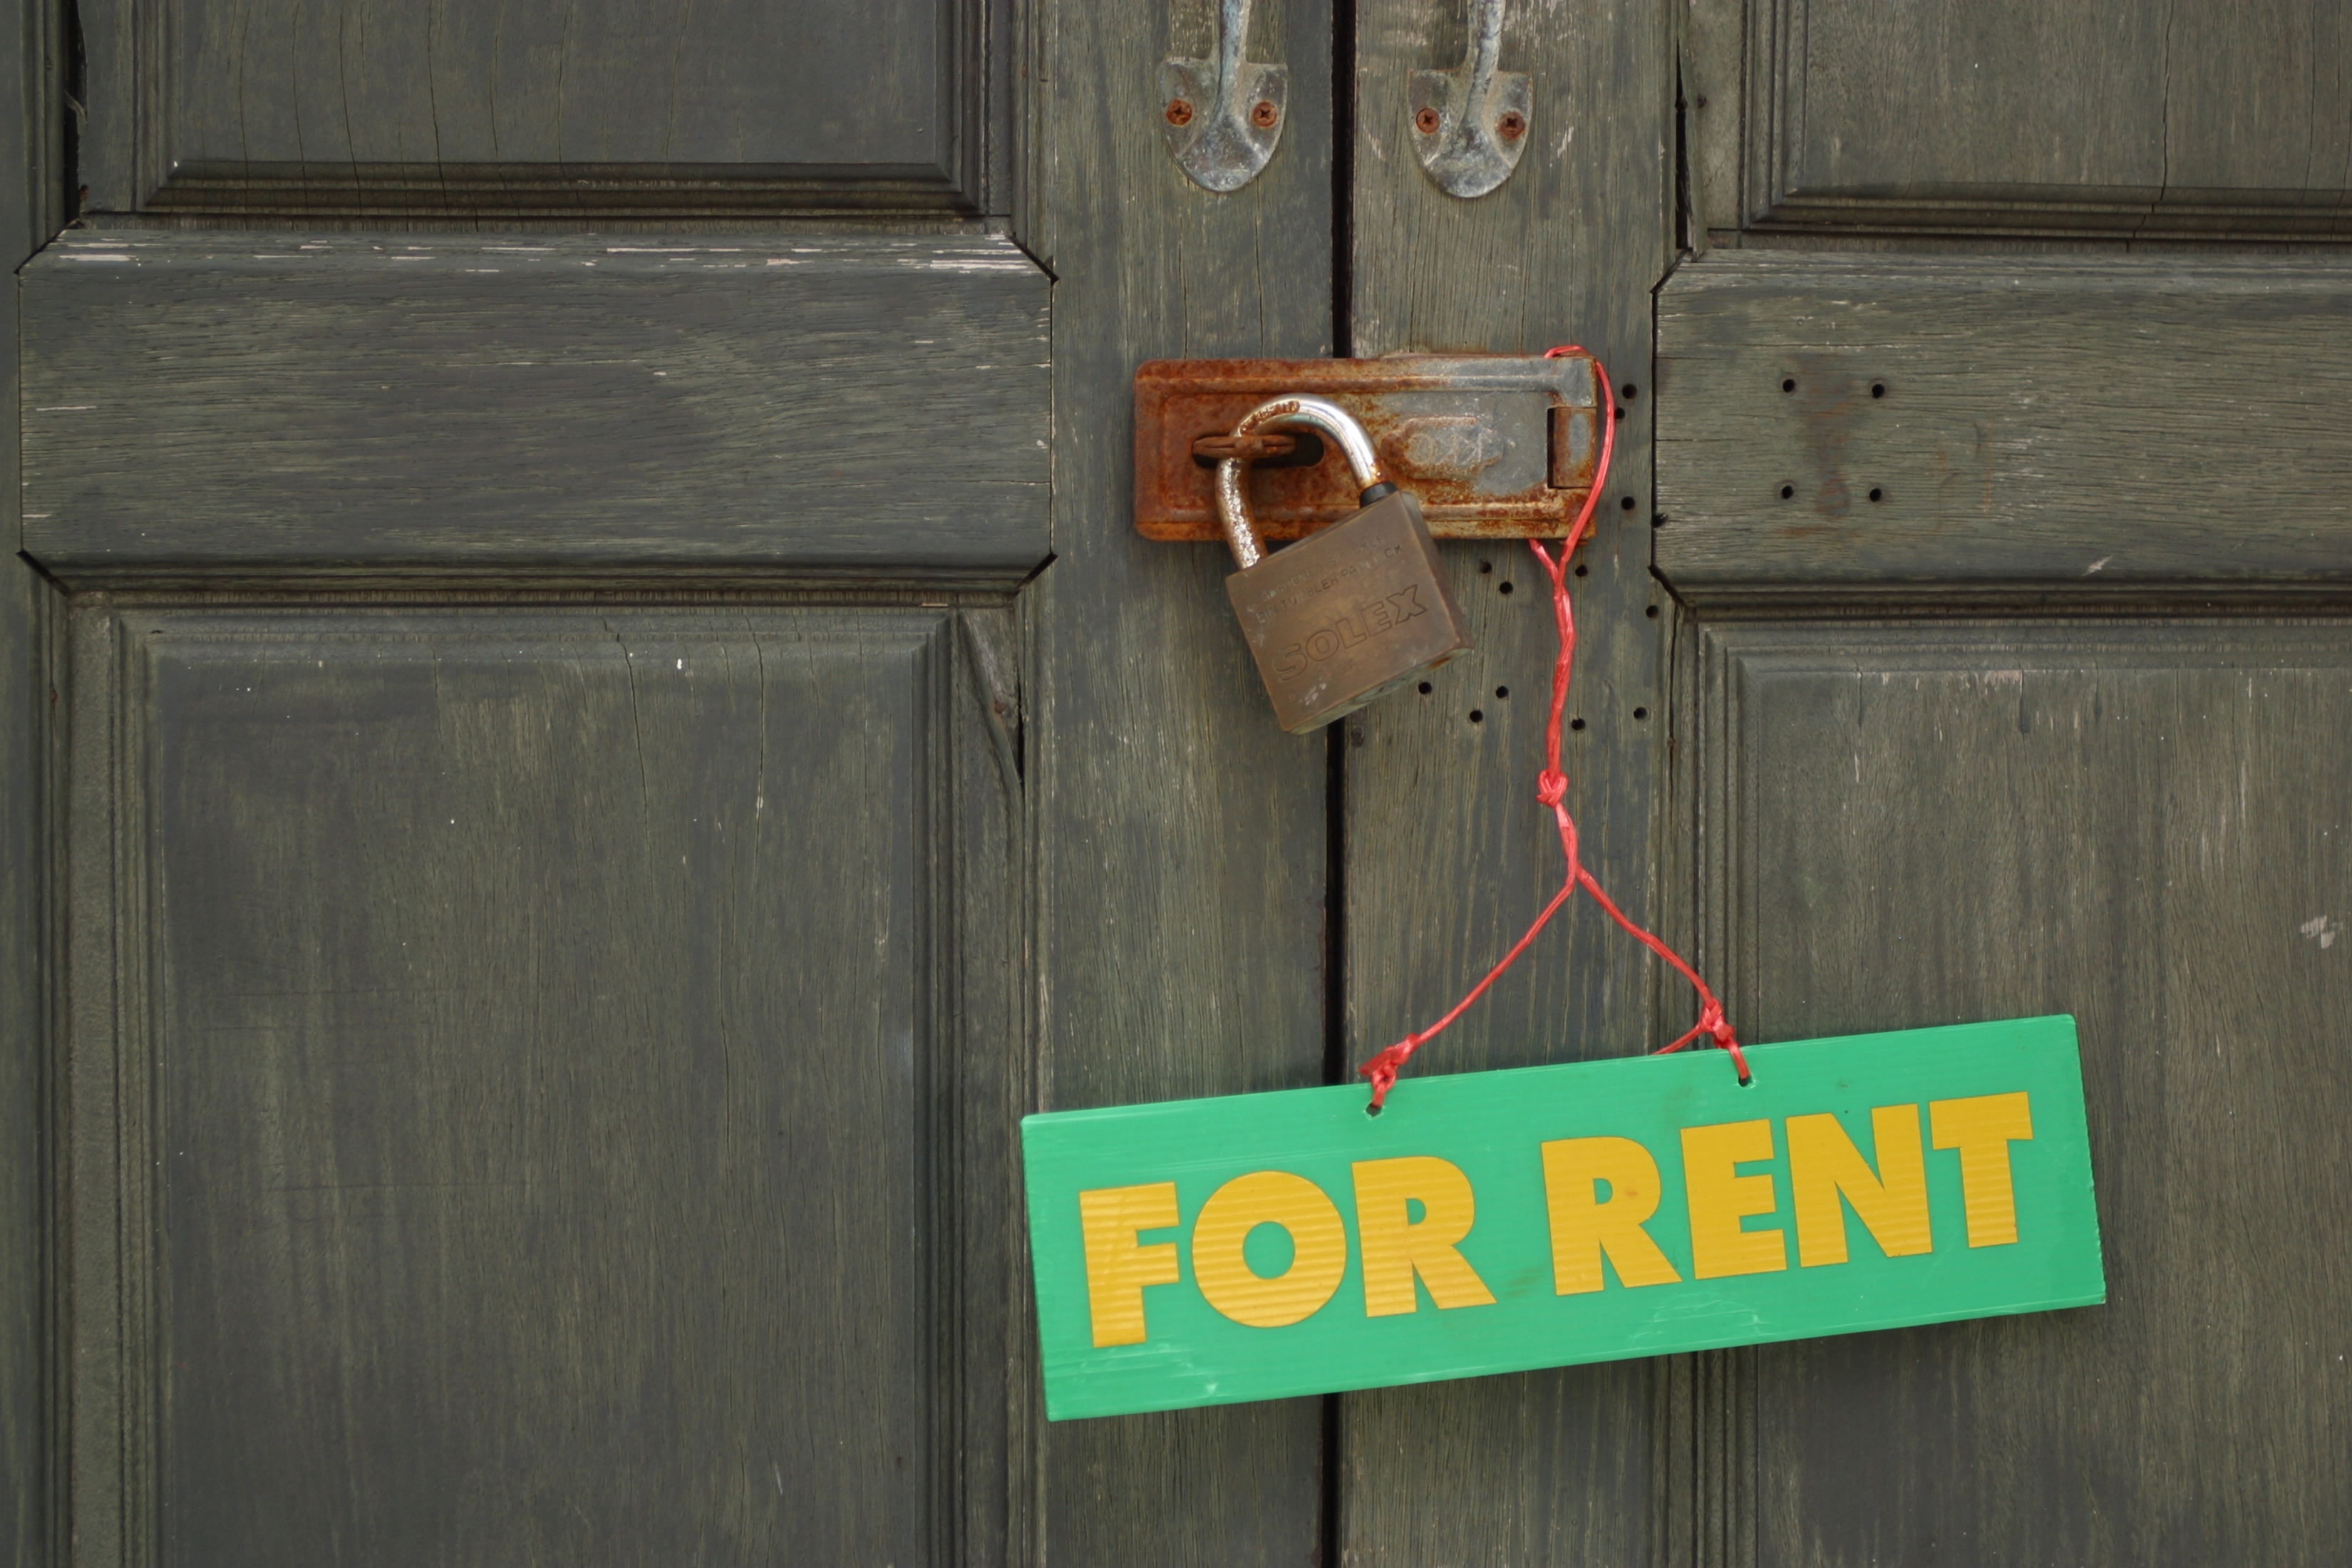 Can My Landlord Be in Trouble if He Has No Certification of